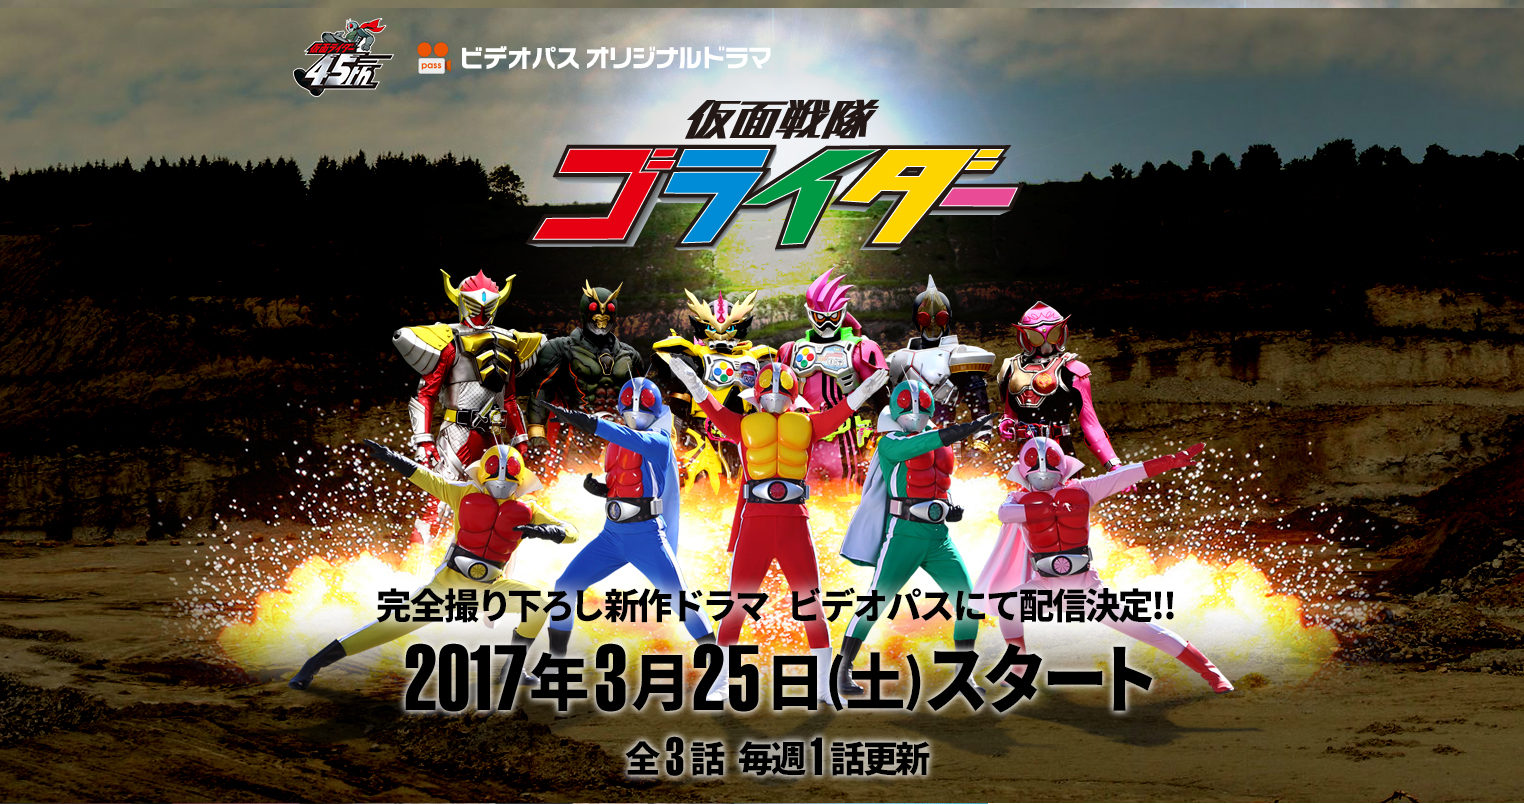 Official Cast and Staff List for Upcoming Miniseries, Kamen Sentai Gorider